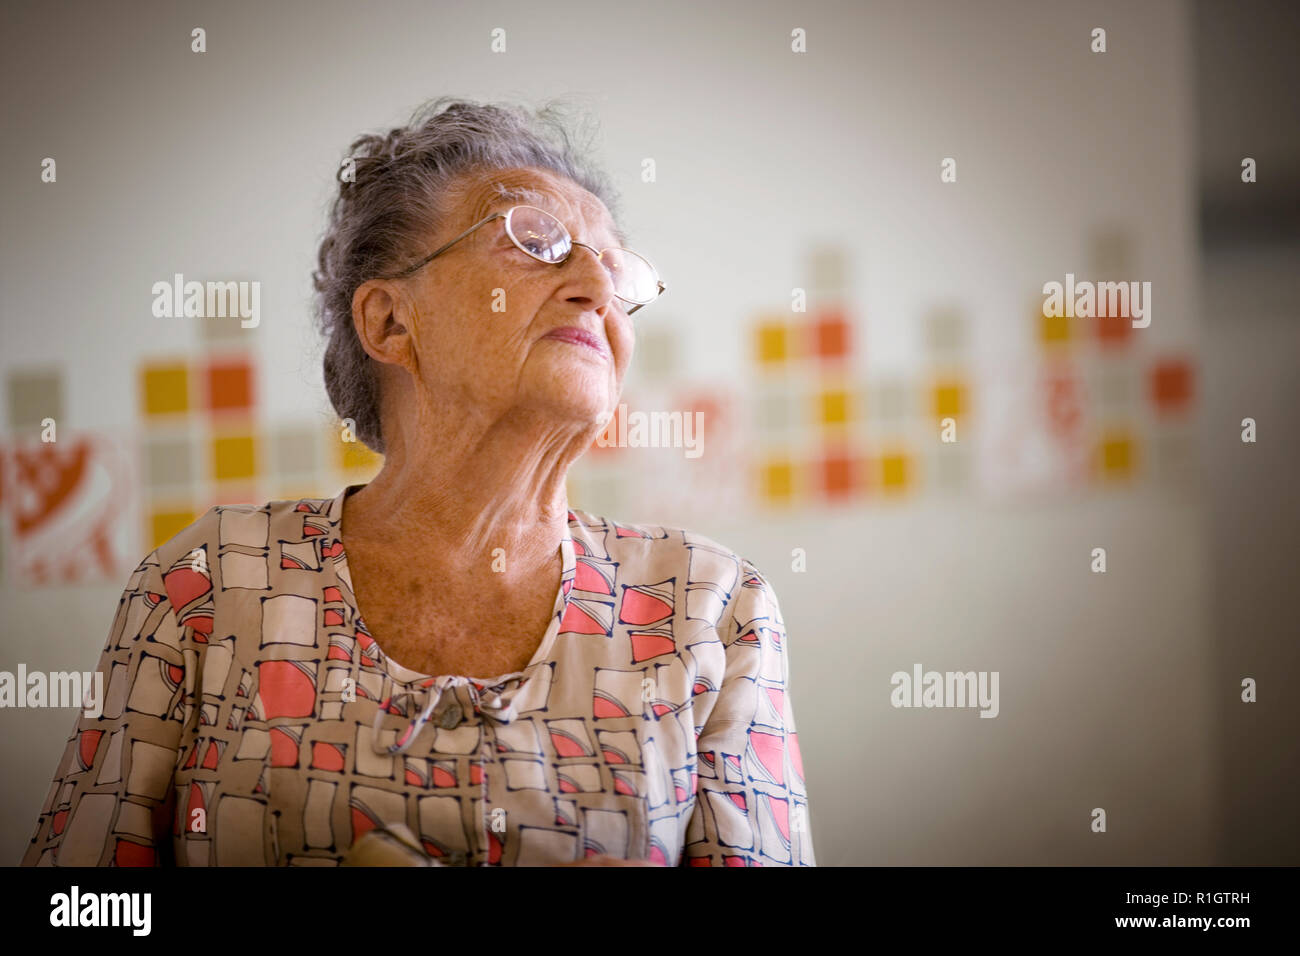 Portrait of an old lady. - Stock Image